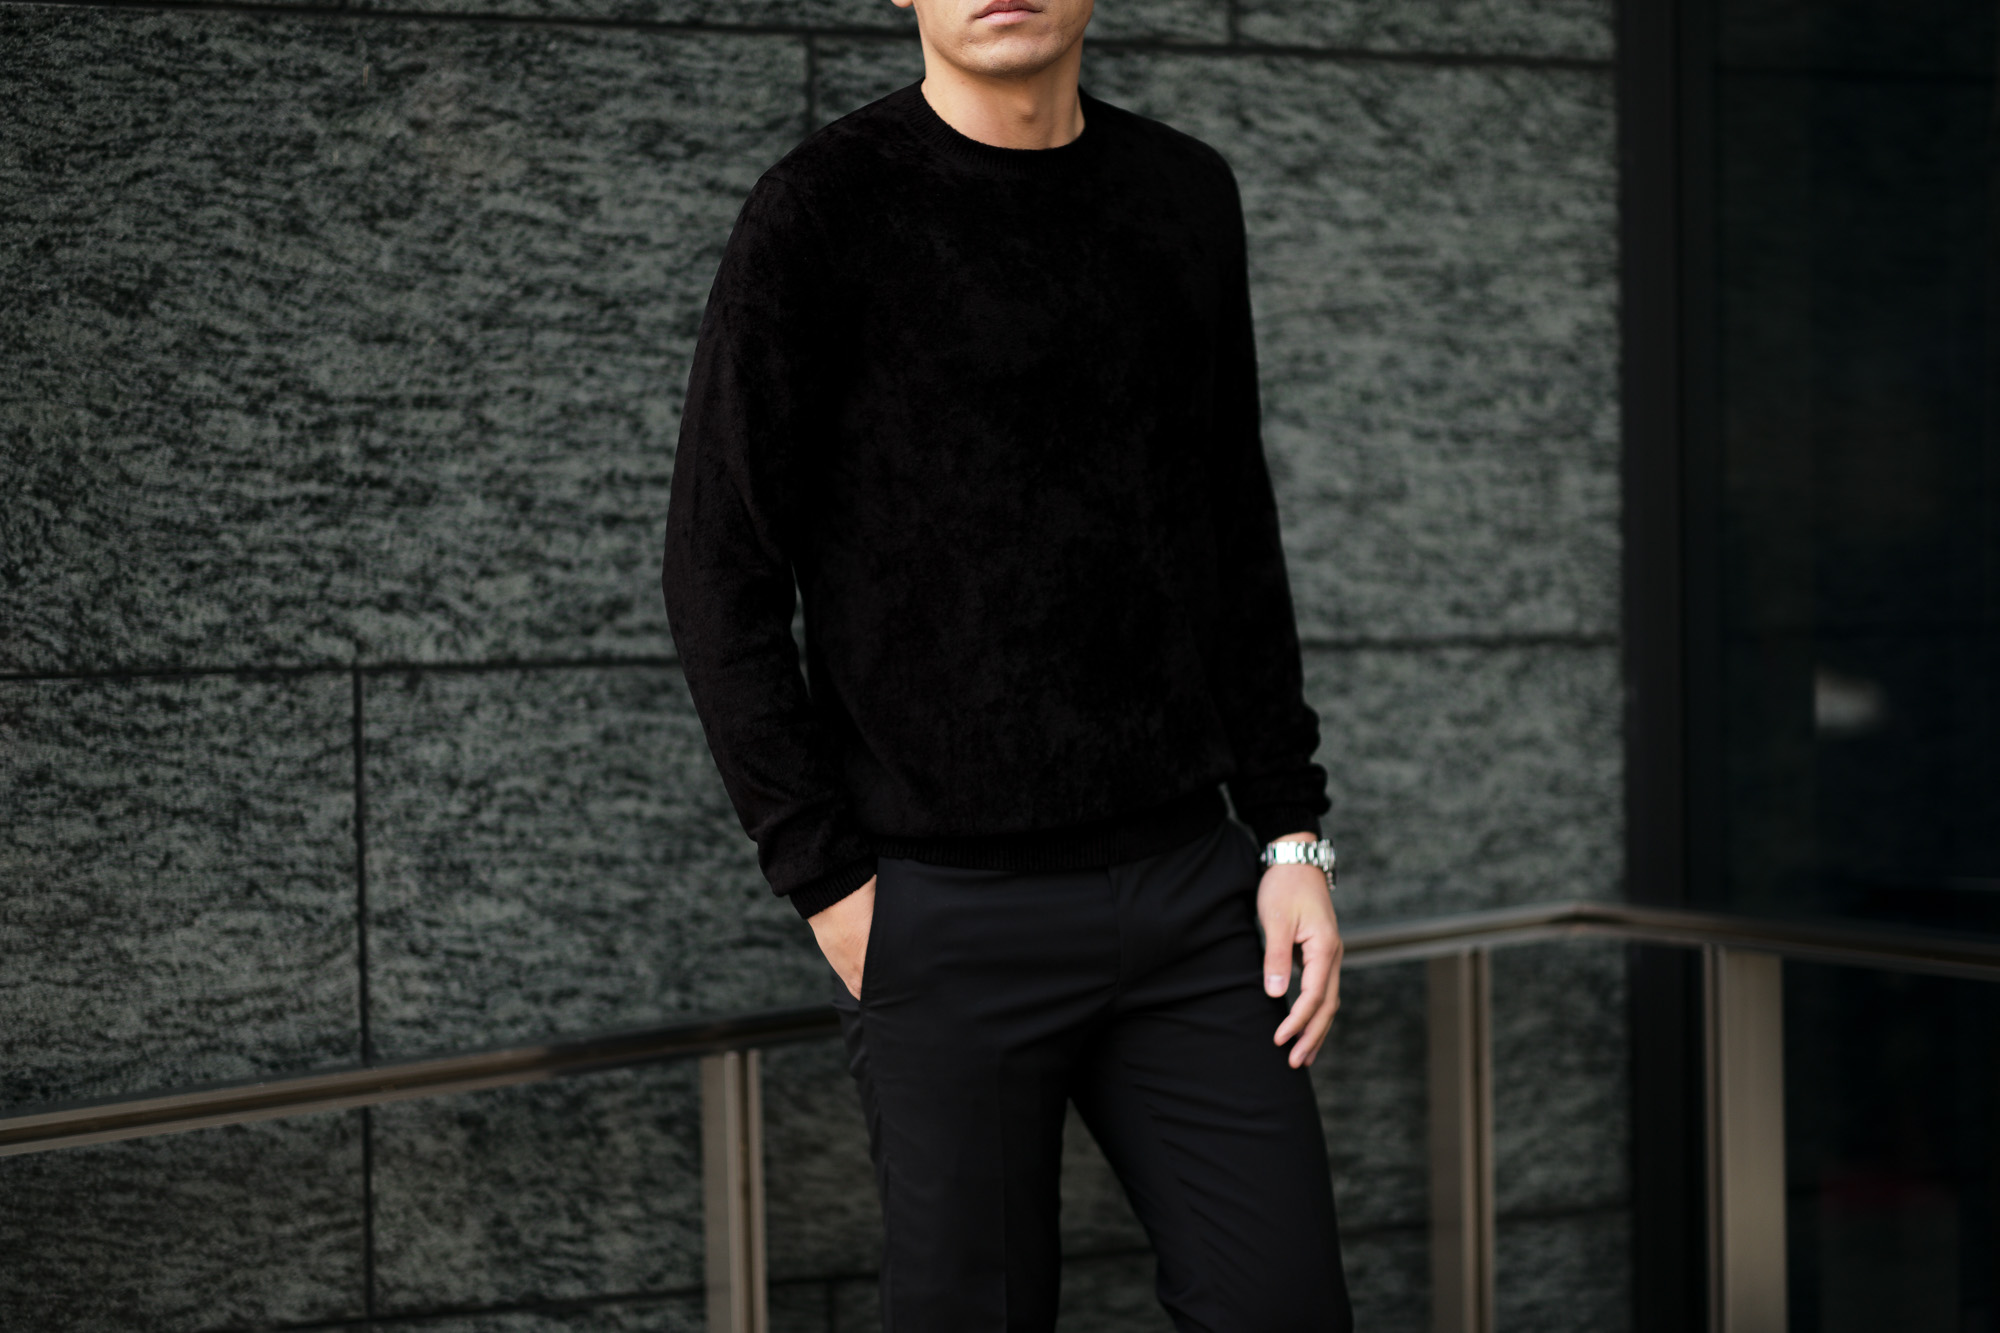 Settefili Cashmere (セッテフィーリ カシミア) Pile Knit Sweater パイルニットセーター BLACK (ブラック・GD03) made in italy (イタリア製)  2020 春夏新作 愛知 名古屋 altoediritto アルトエデリット